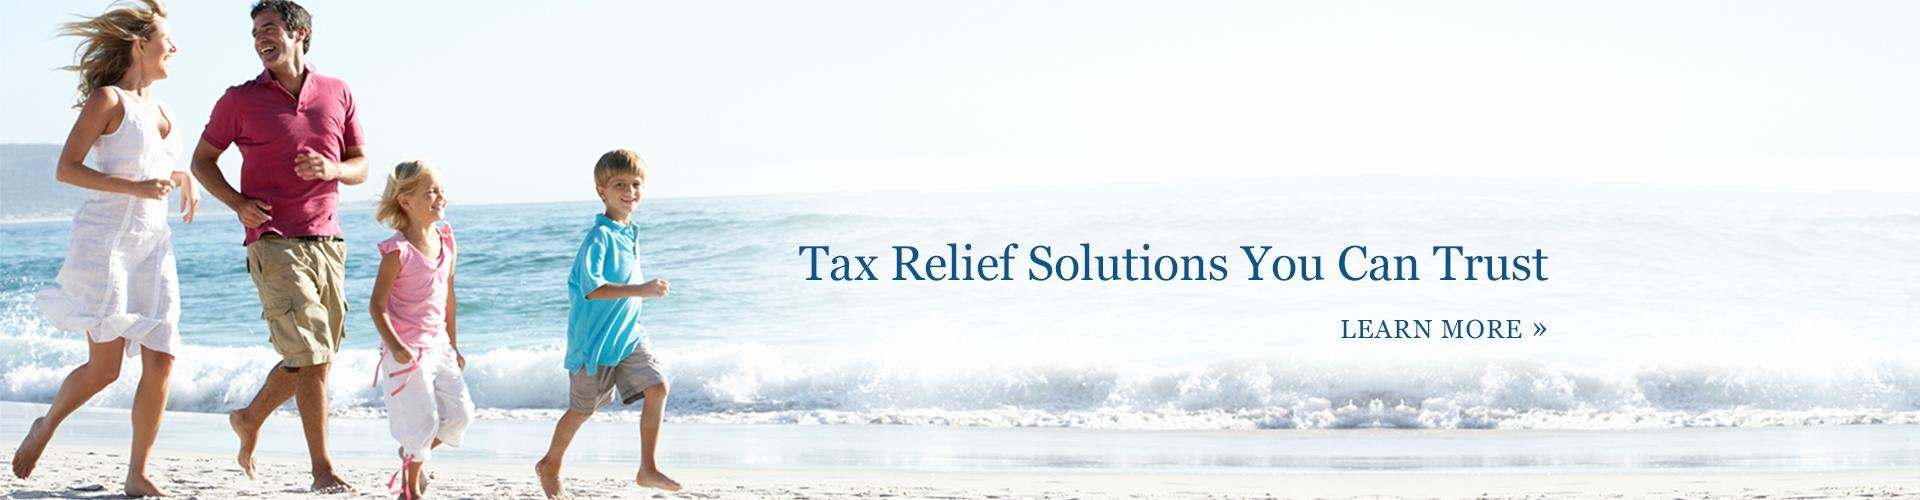 Axiom Tax Resolution Group (@axiomtaxresolutiongroup) Cover Image